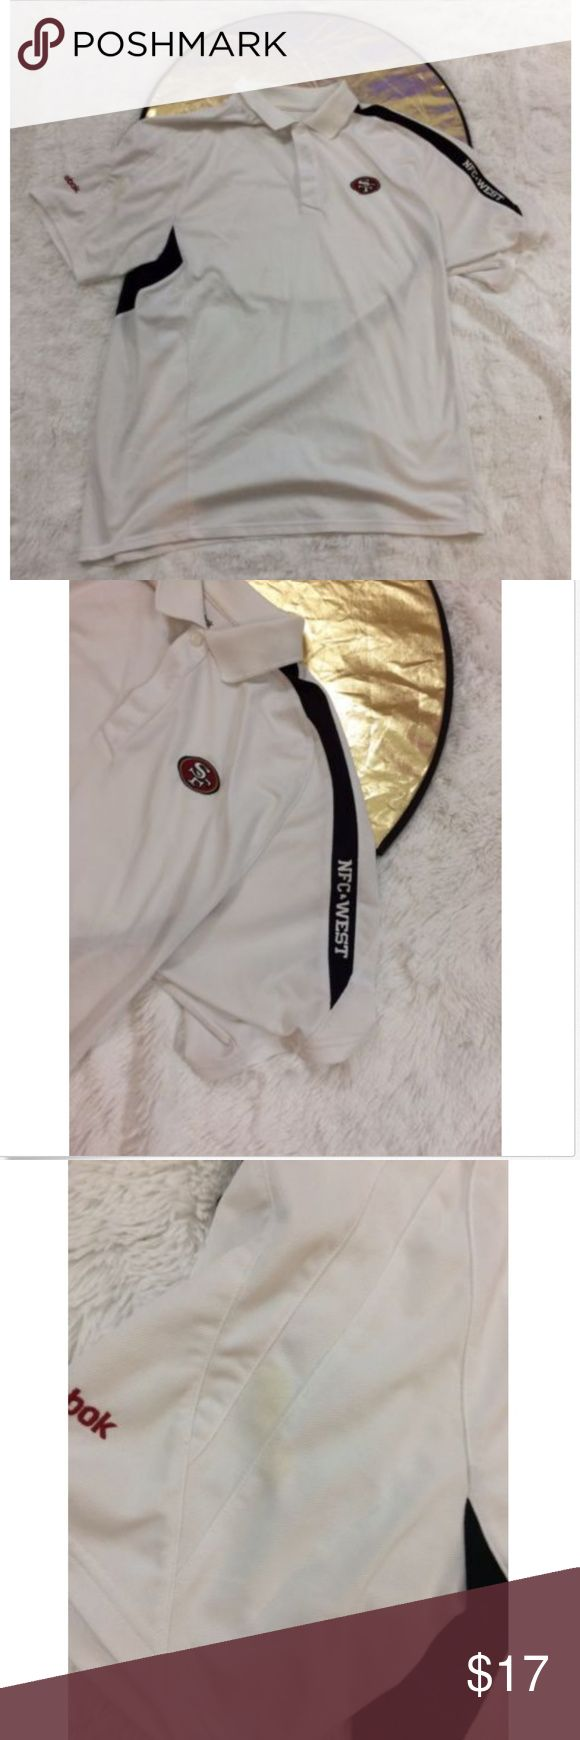 """Reebok San francisco 49ers polo shirt"""" Coach Appa Vintage Reebok San francisco 49ers polo shirt"""" Coach Apparel"""" Nfc West Stitched on the sleeve    Mens Adult size L  Pit-Pit-25  Please see pictures for full details  Ships fast and safe! Reebok Shirts Polos"""